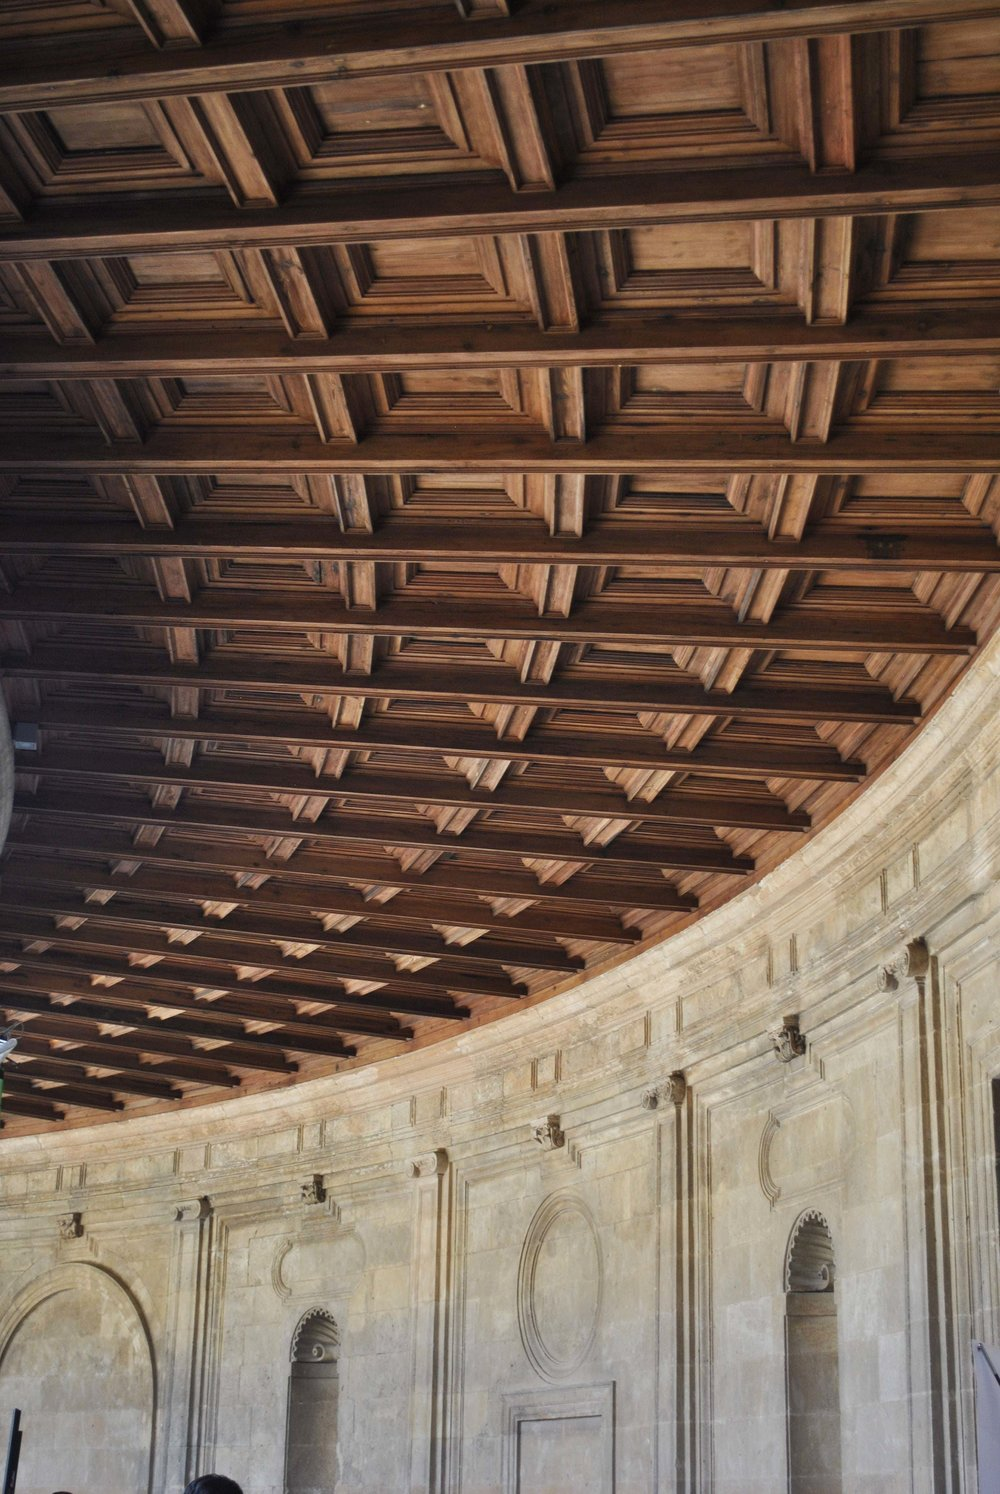 ©Detail Movement - Alhambra Palacio de Carlos V roof detail (no 11 on the map)